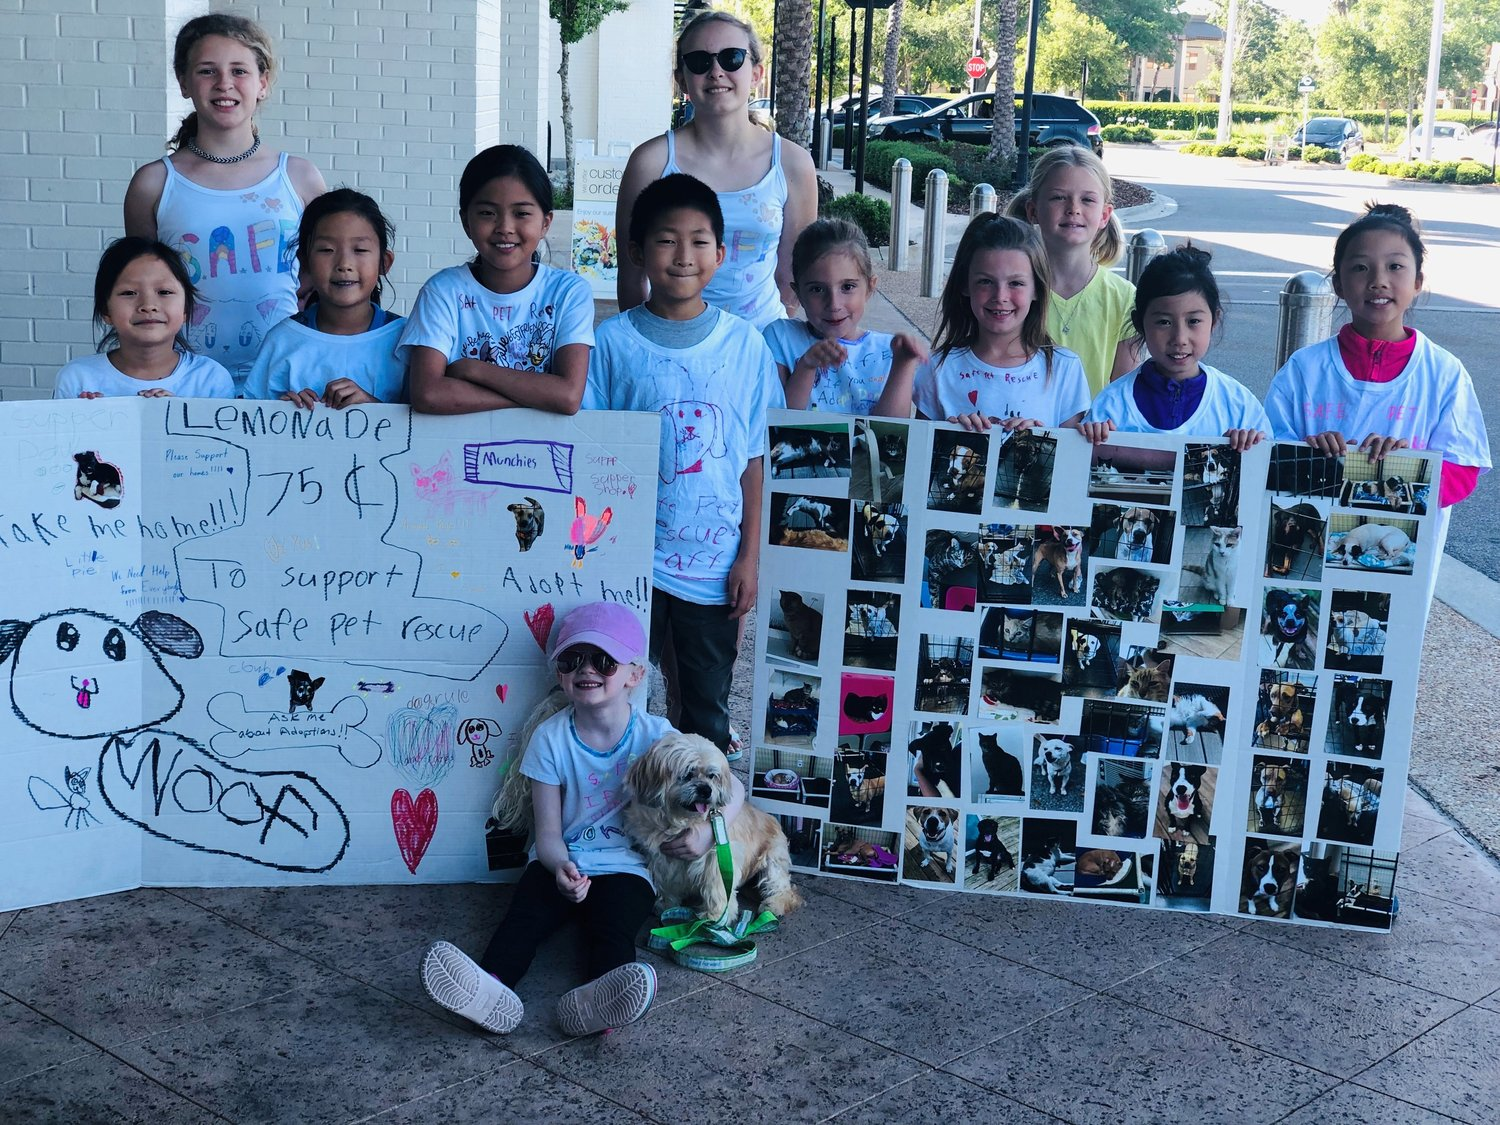 PVPV/Rawlings Elementary School students hold a lemonade stand at Publix in Sawgrass Village to raise money and awareness for S.A.F.E. Pet Rescue in St. Augustine.